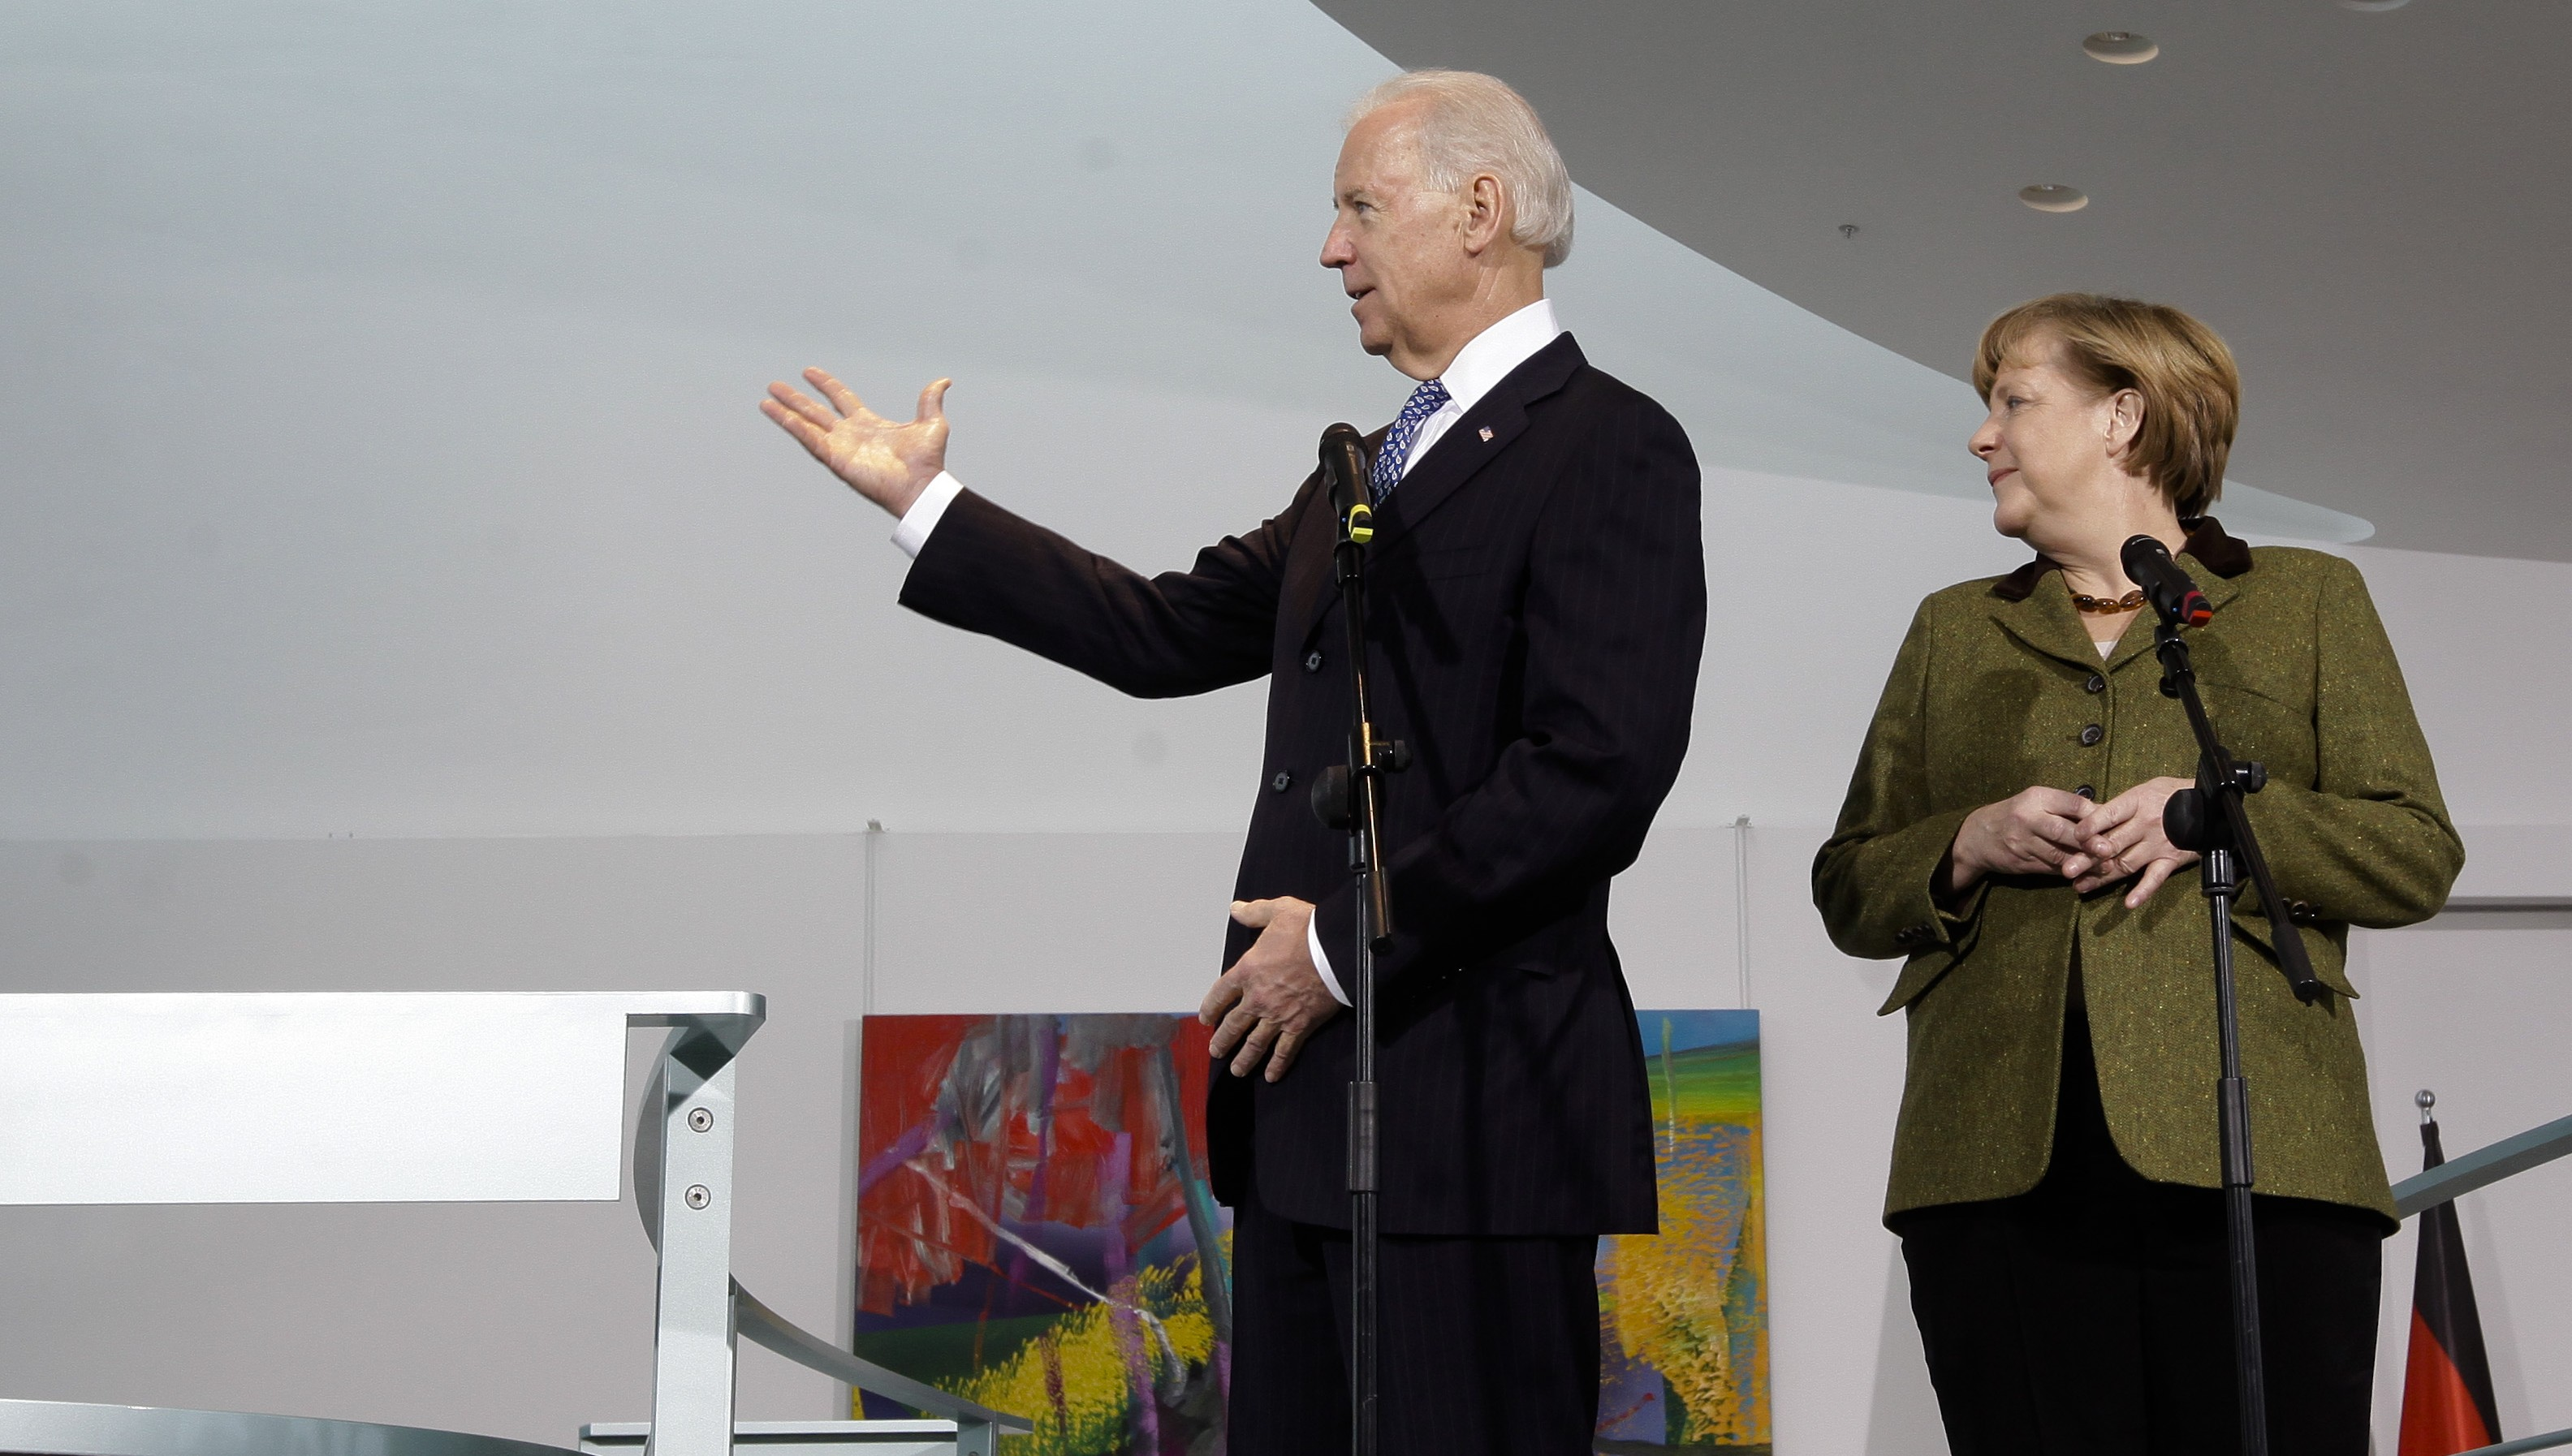 German Chancellor Angela Merkel and United States Vice President Joe Biden brief the media prior to a meeting at the chancellery in Berlin, Friday, Feb. 1, 2013. (AP Photo/Markus Schreiber)